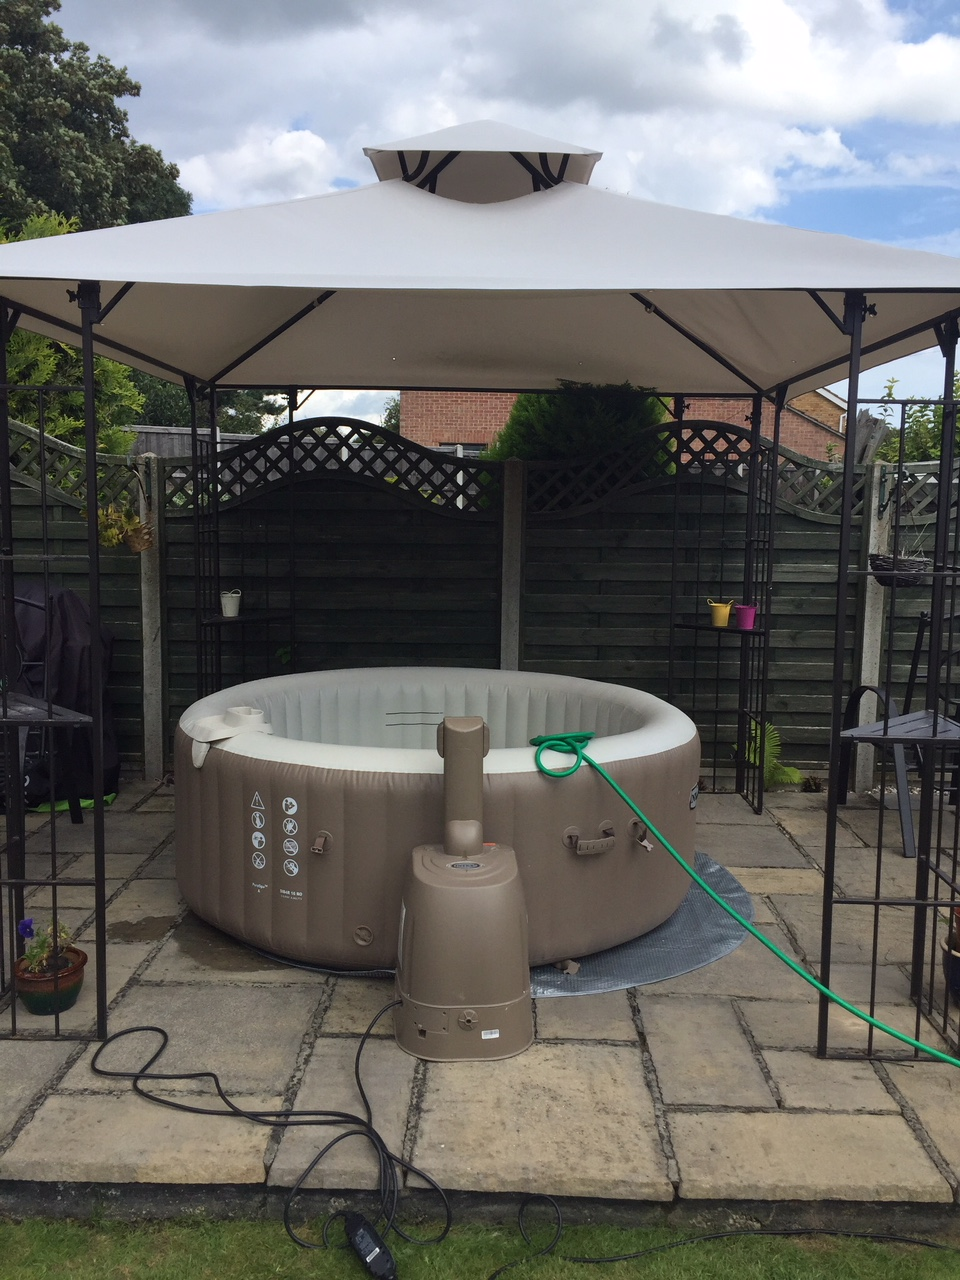 Inflatable and Mobile Hot tub in a Gazebo